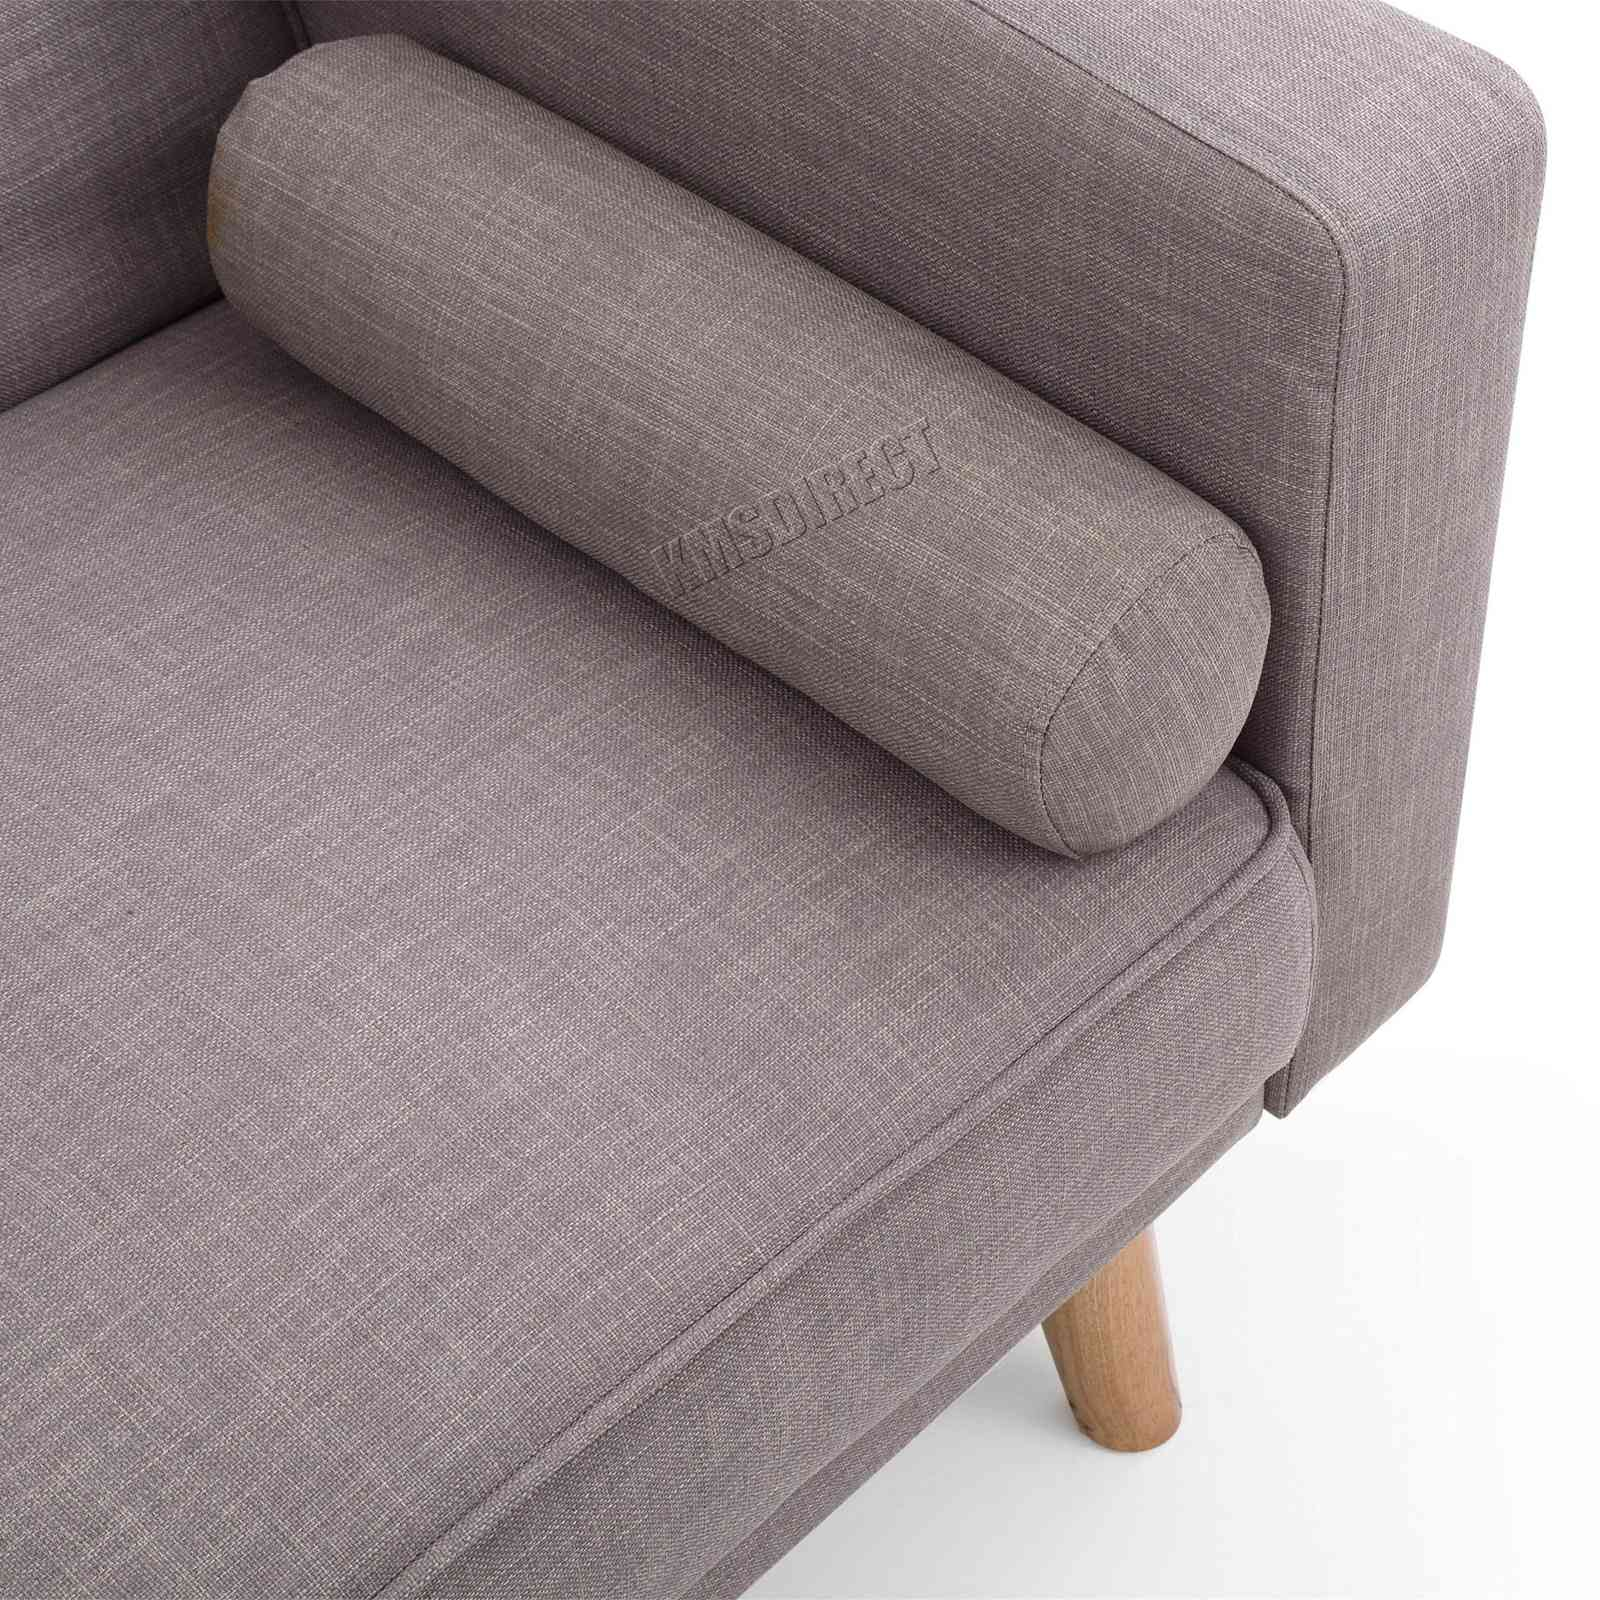 WestWood-Fabric-Sofa-Bed-3-Seater-Couch-Luxury-Modern-Home-Furniture-FSB04-New thumbnail 31